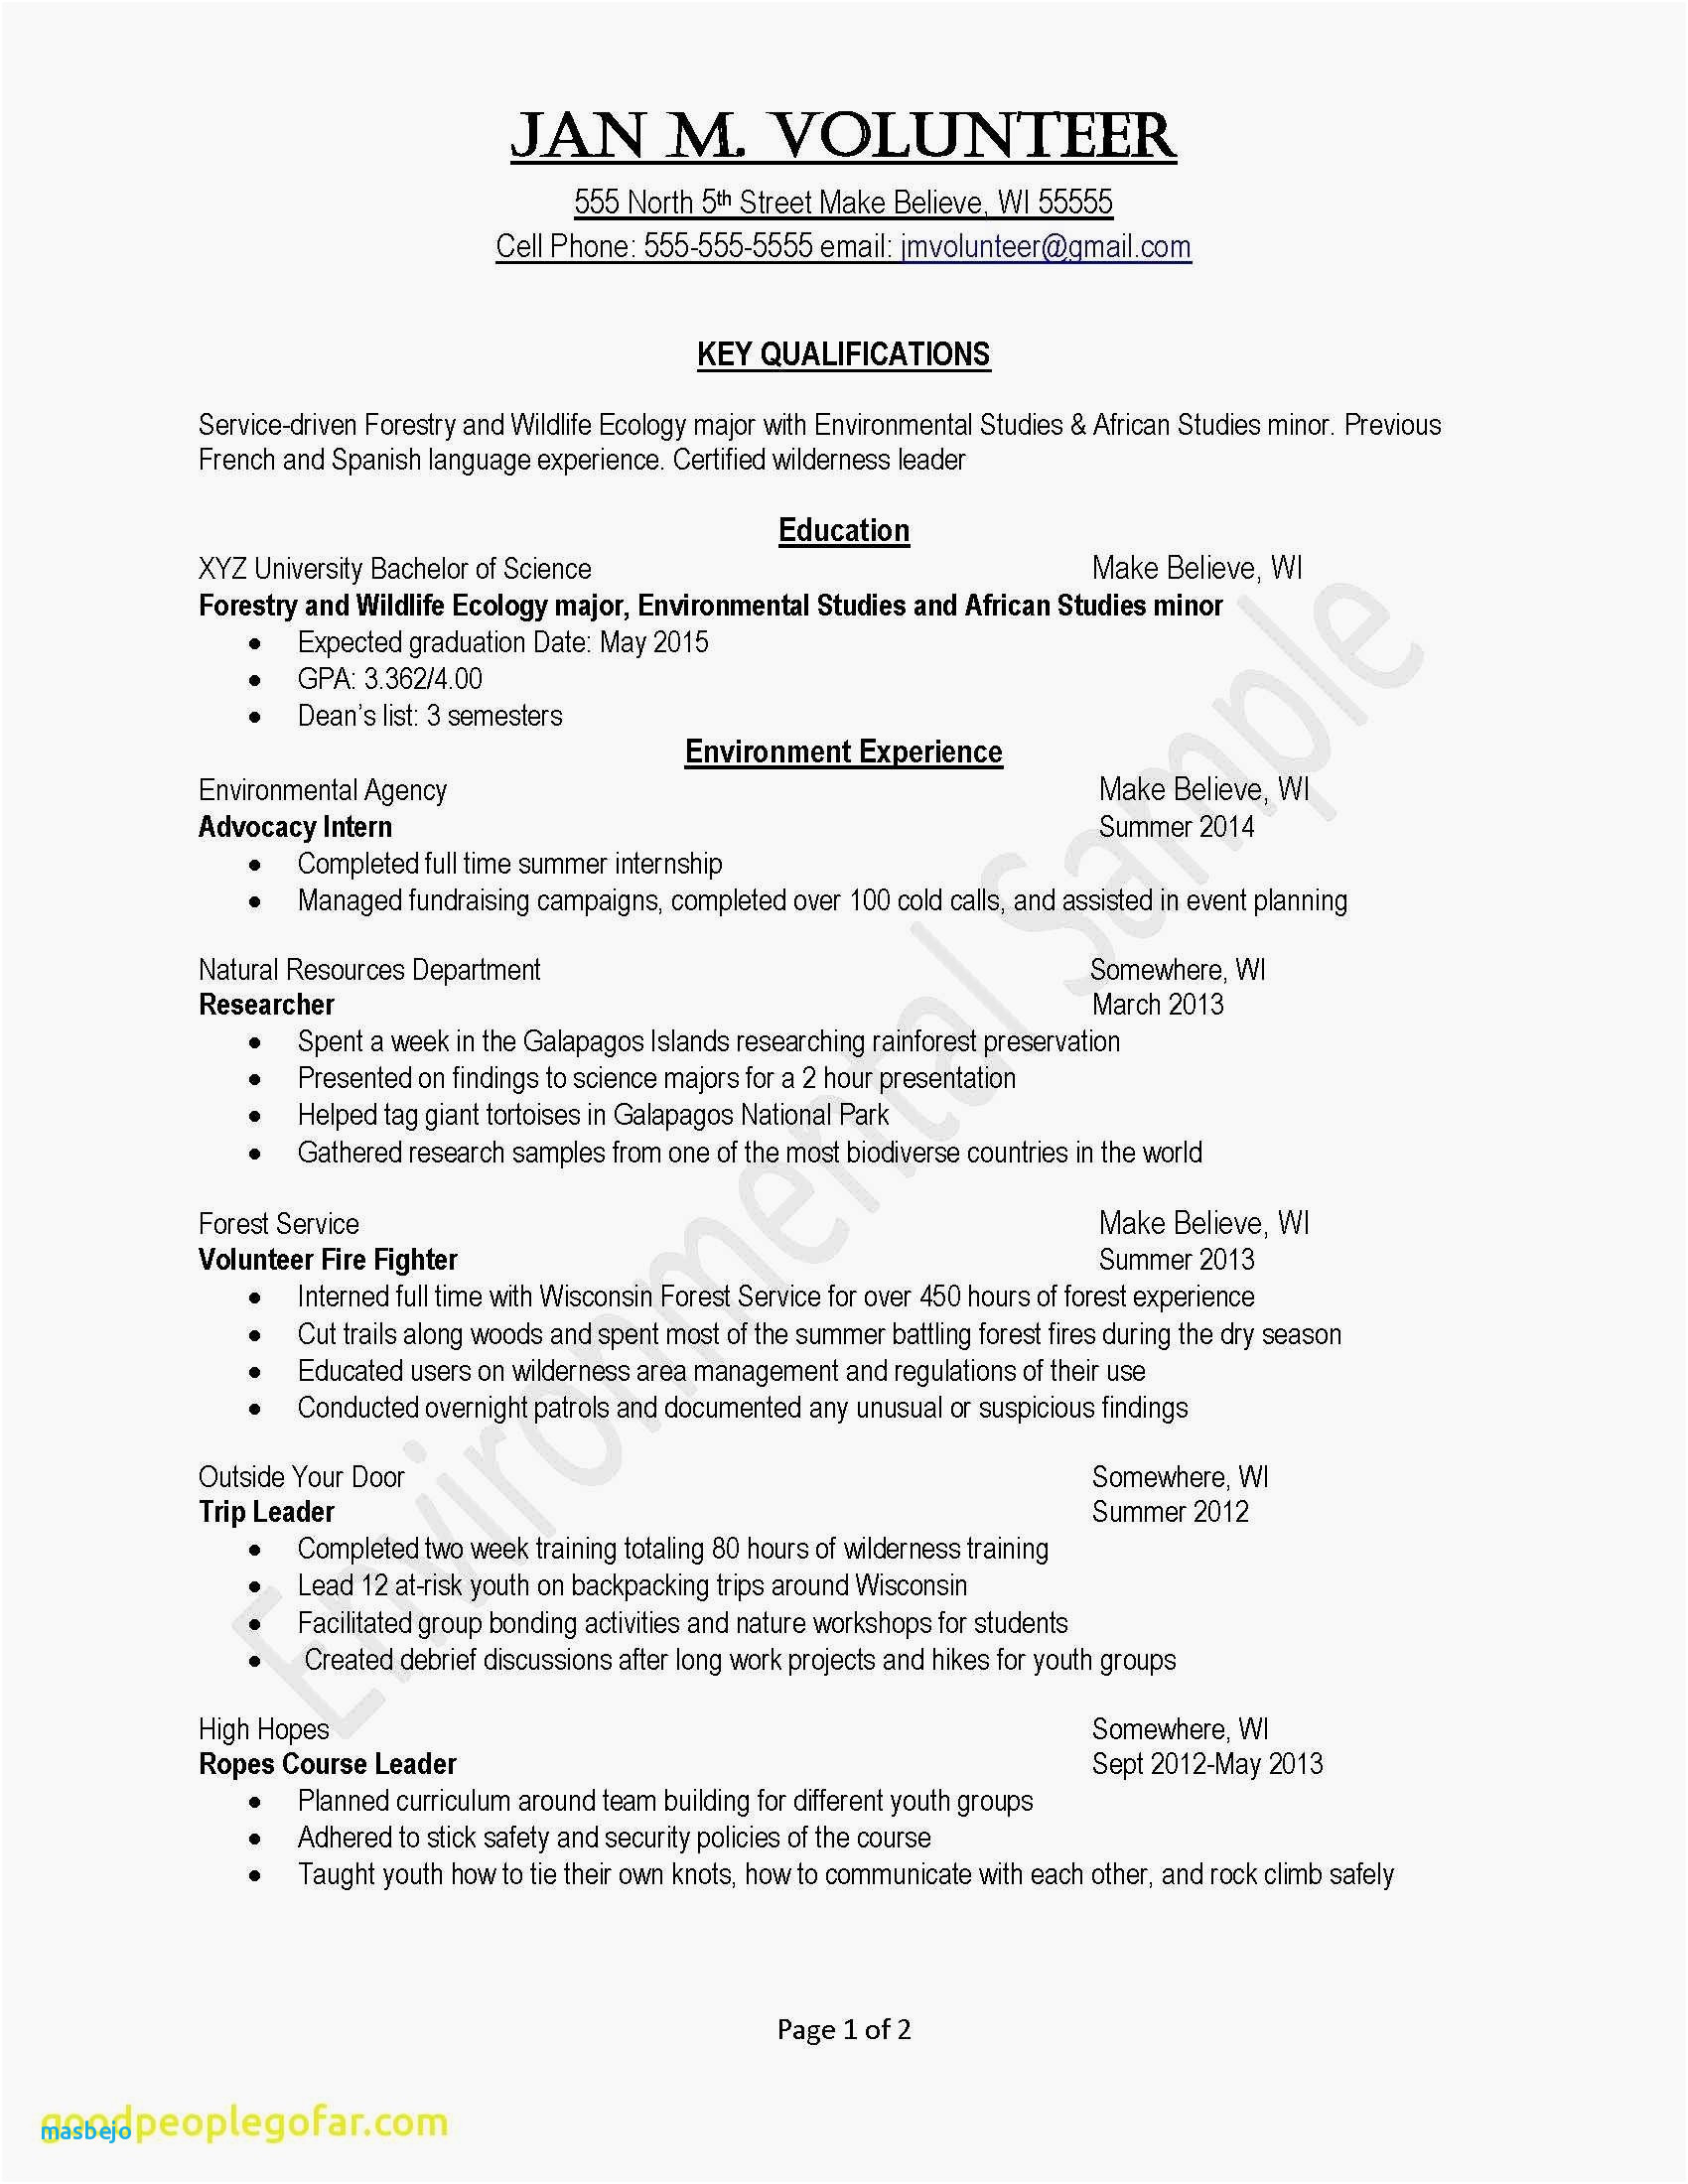 Key Skills for Resume - Example Skills Resume Awesome Examples Resumes Ecologist Resume 0d